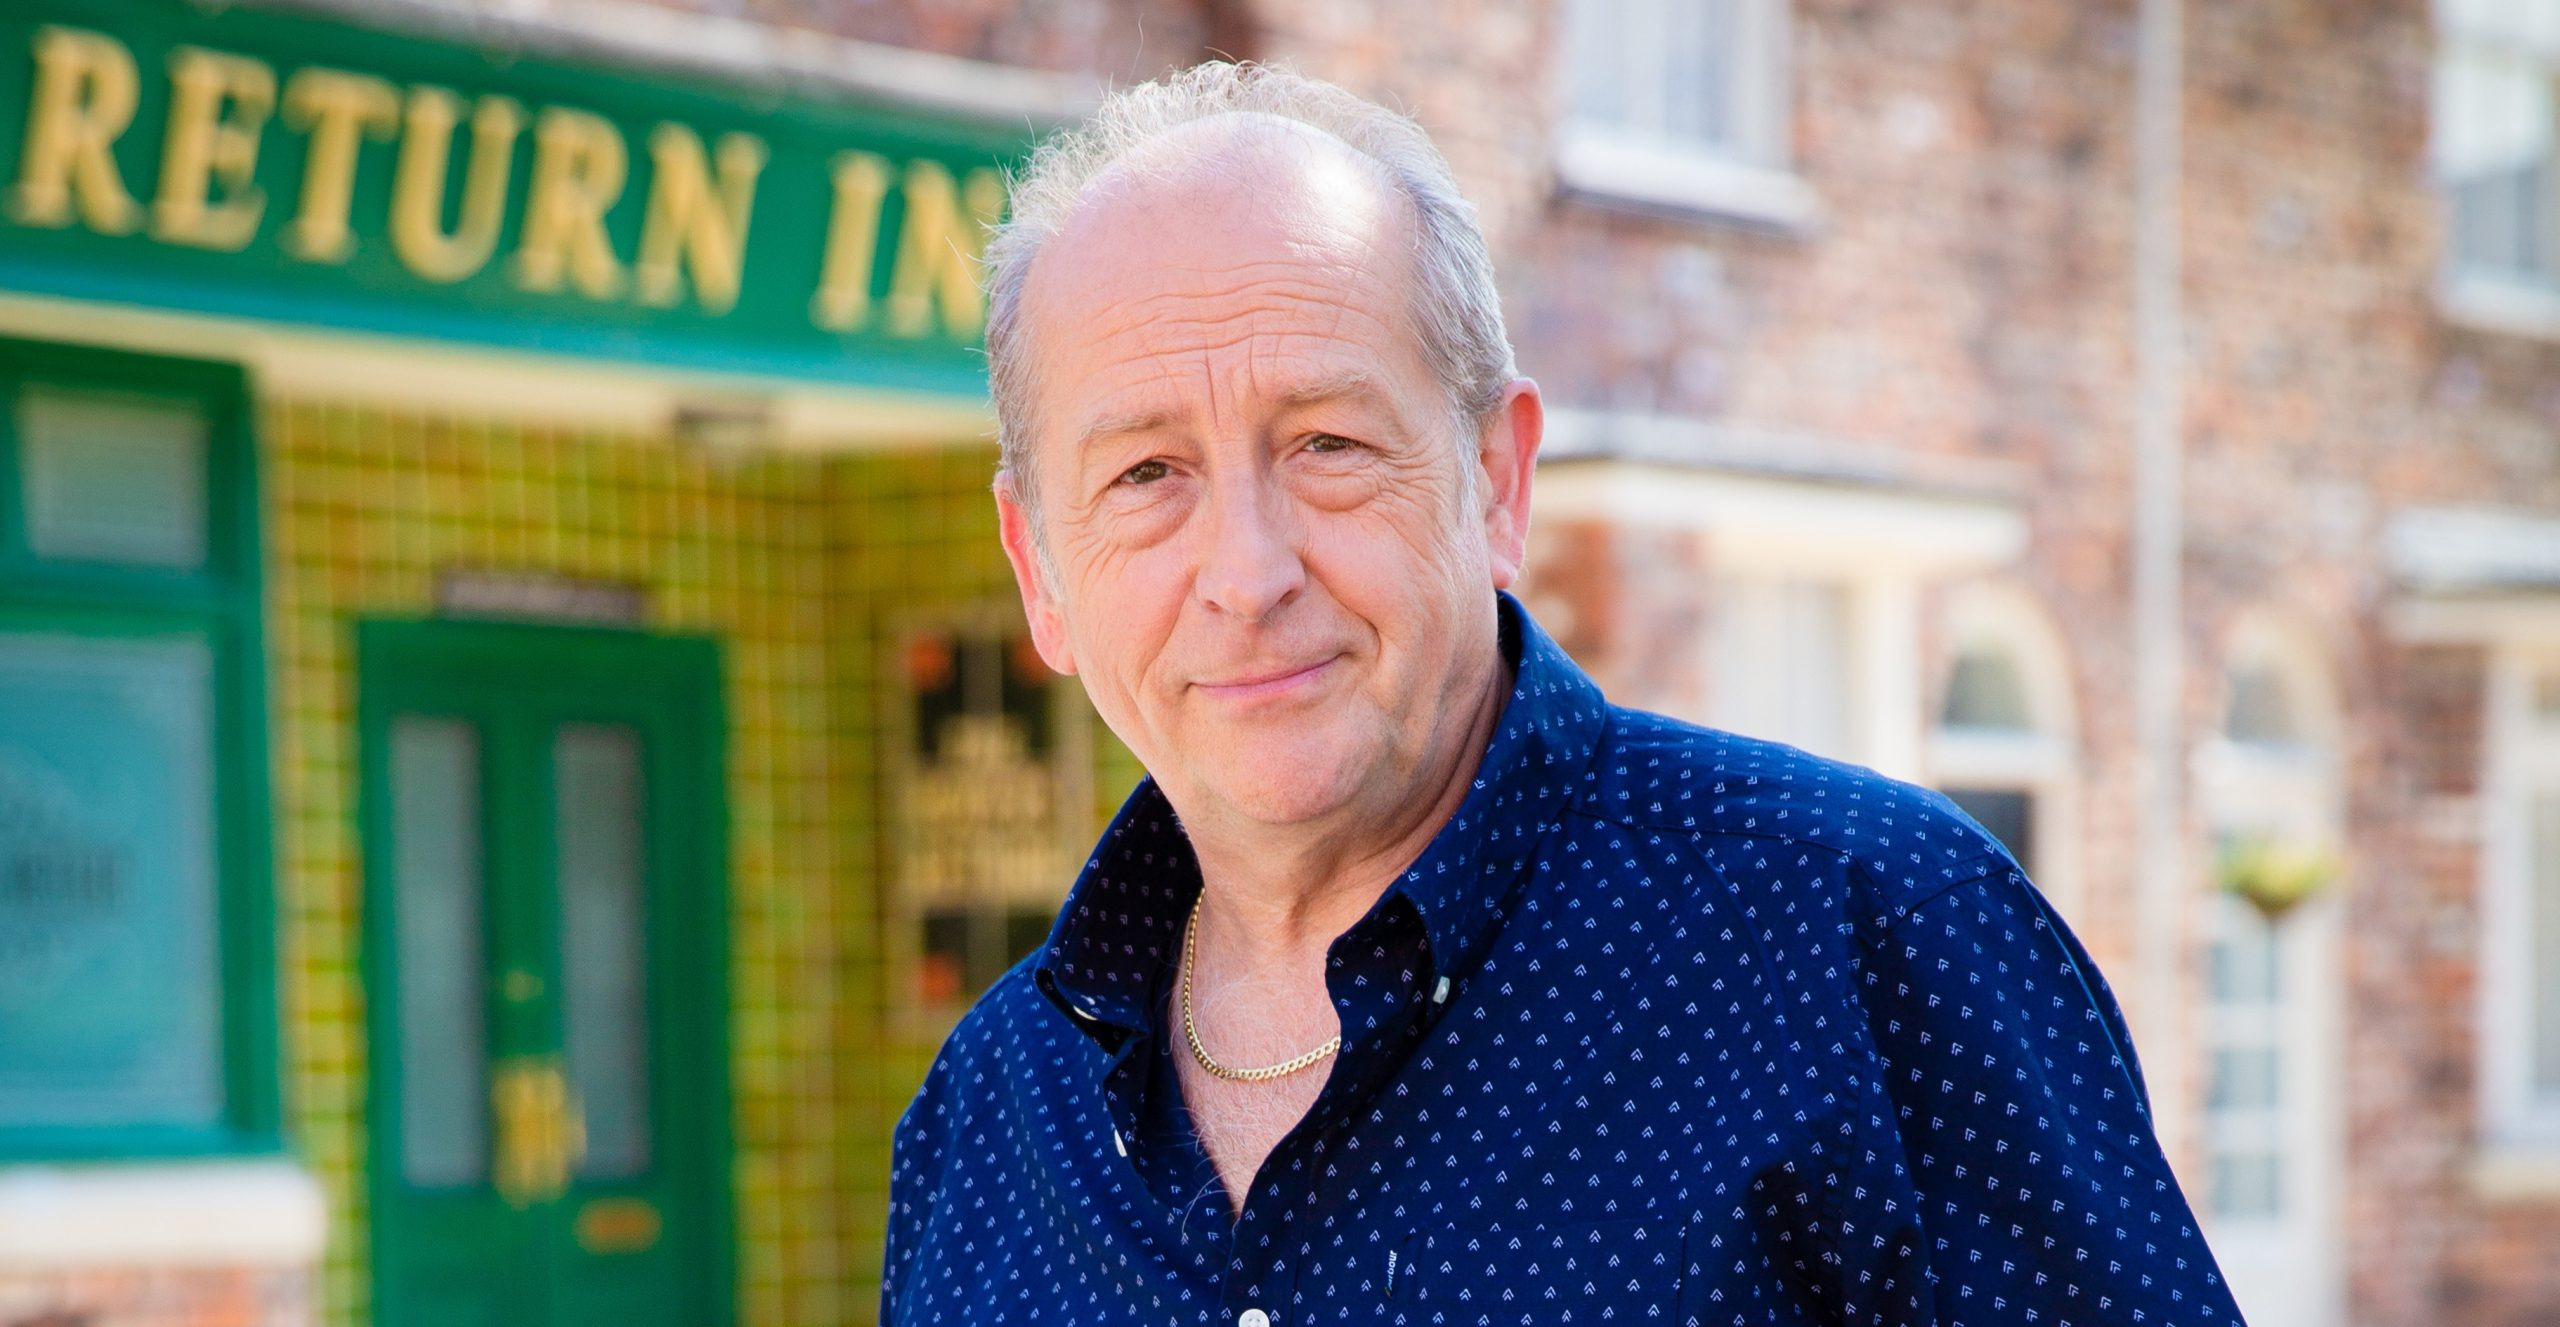 Coronation Street fans disgusted as Geoff wastes NHS time